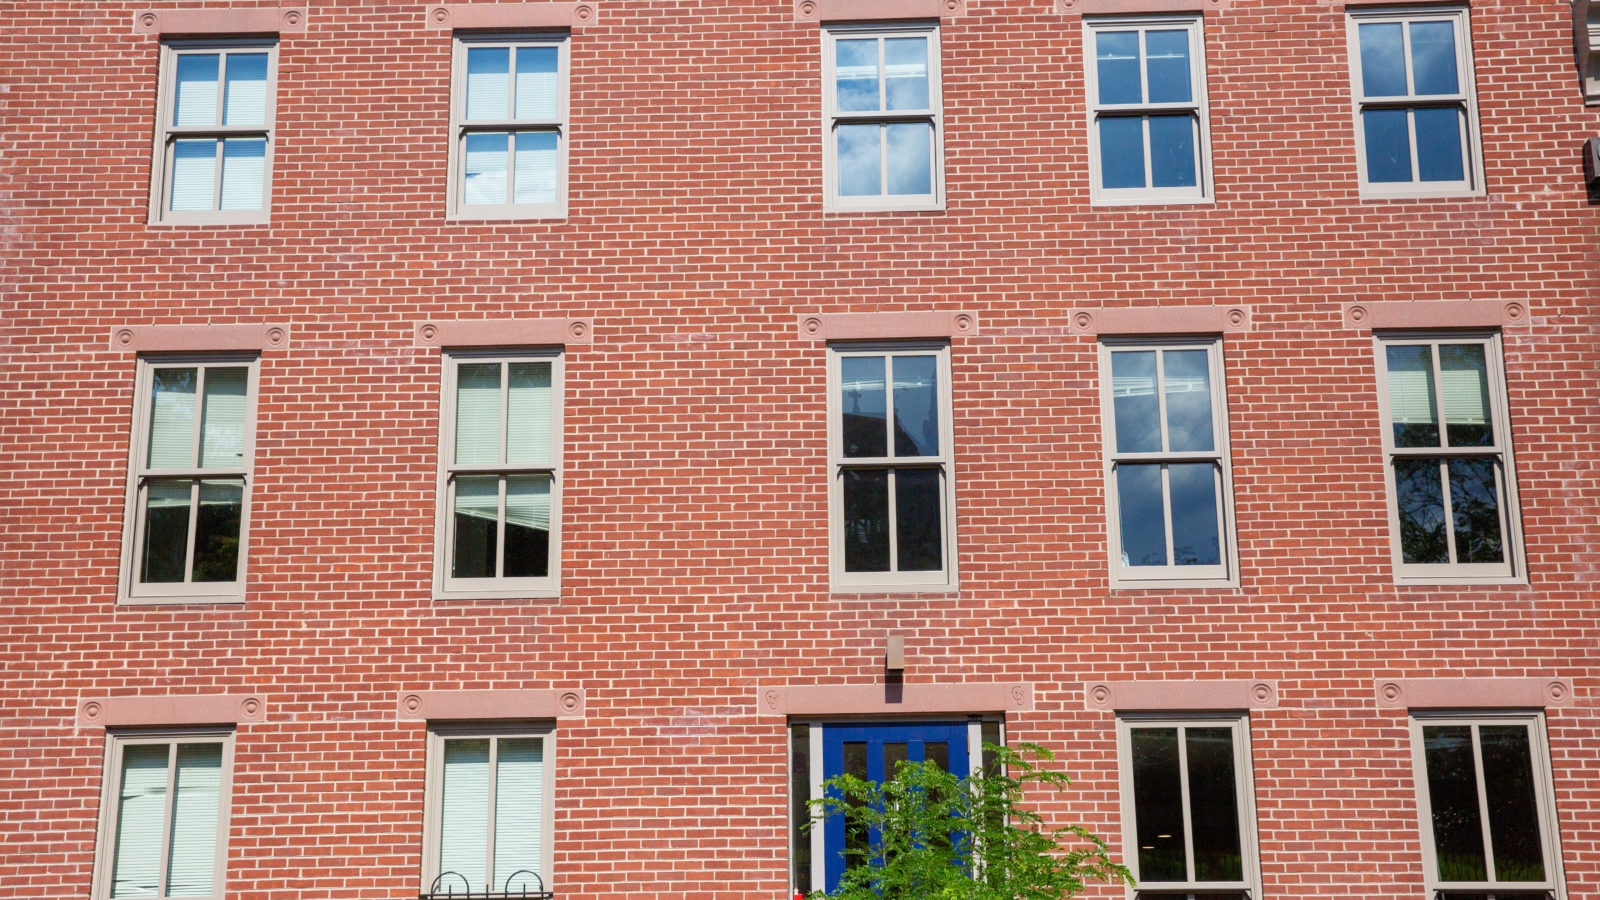 Photo displays a red bricked building.